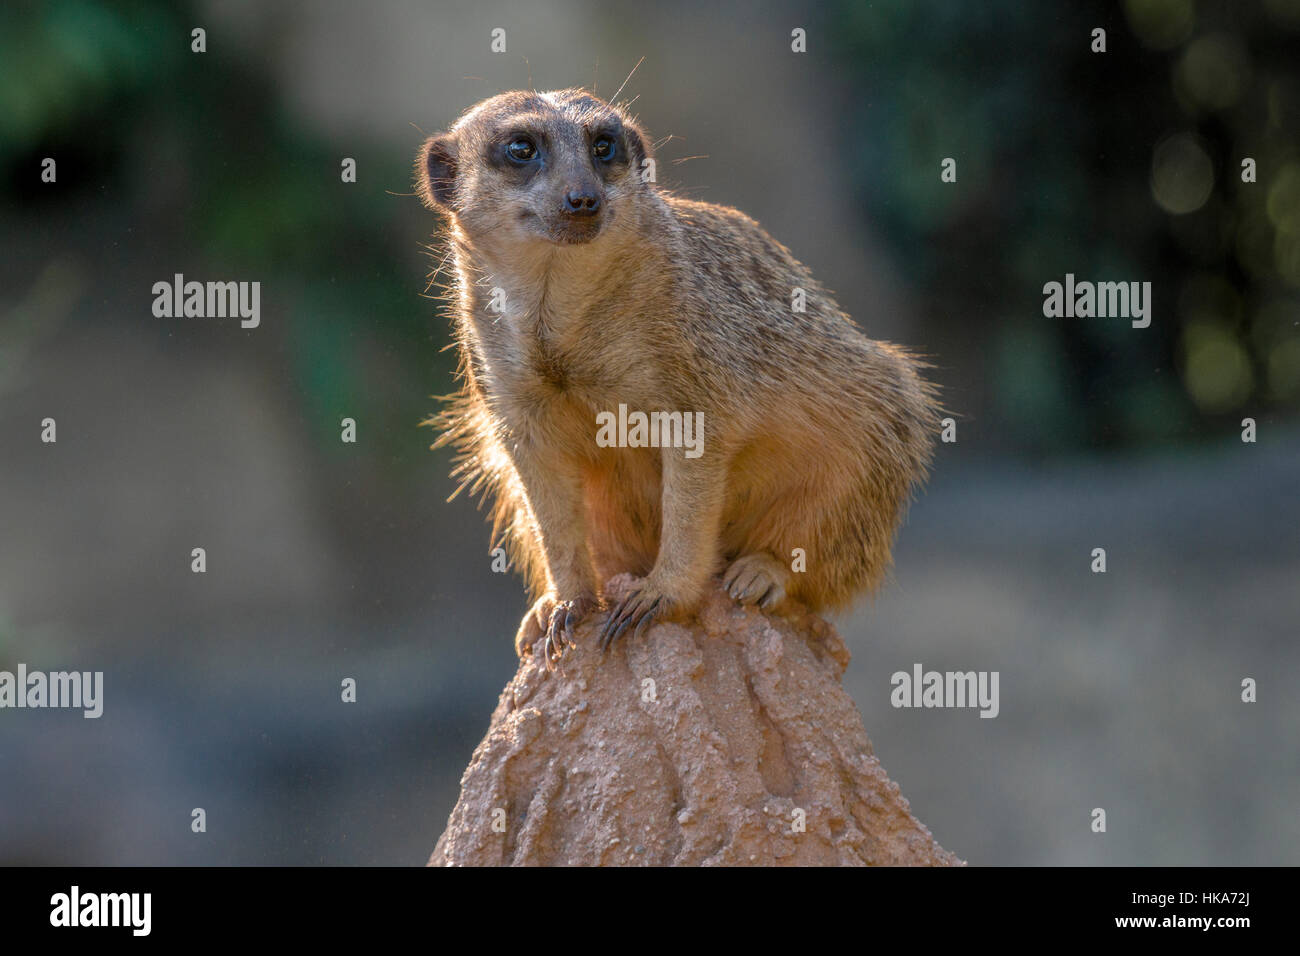 A Meerkat (Suricata suricatta) is sitting on a rock, watching out - Stock Image